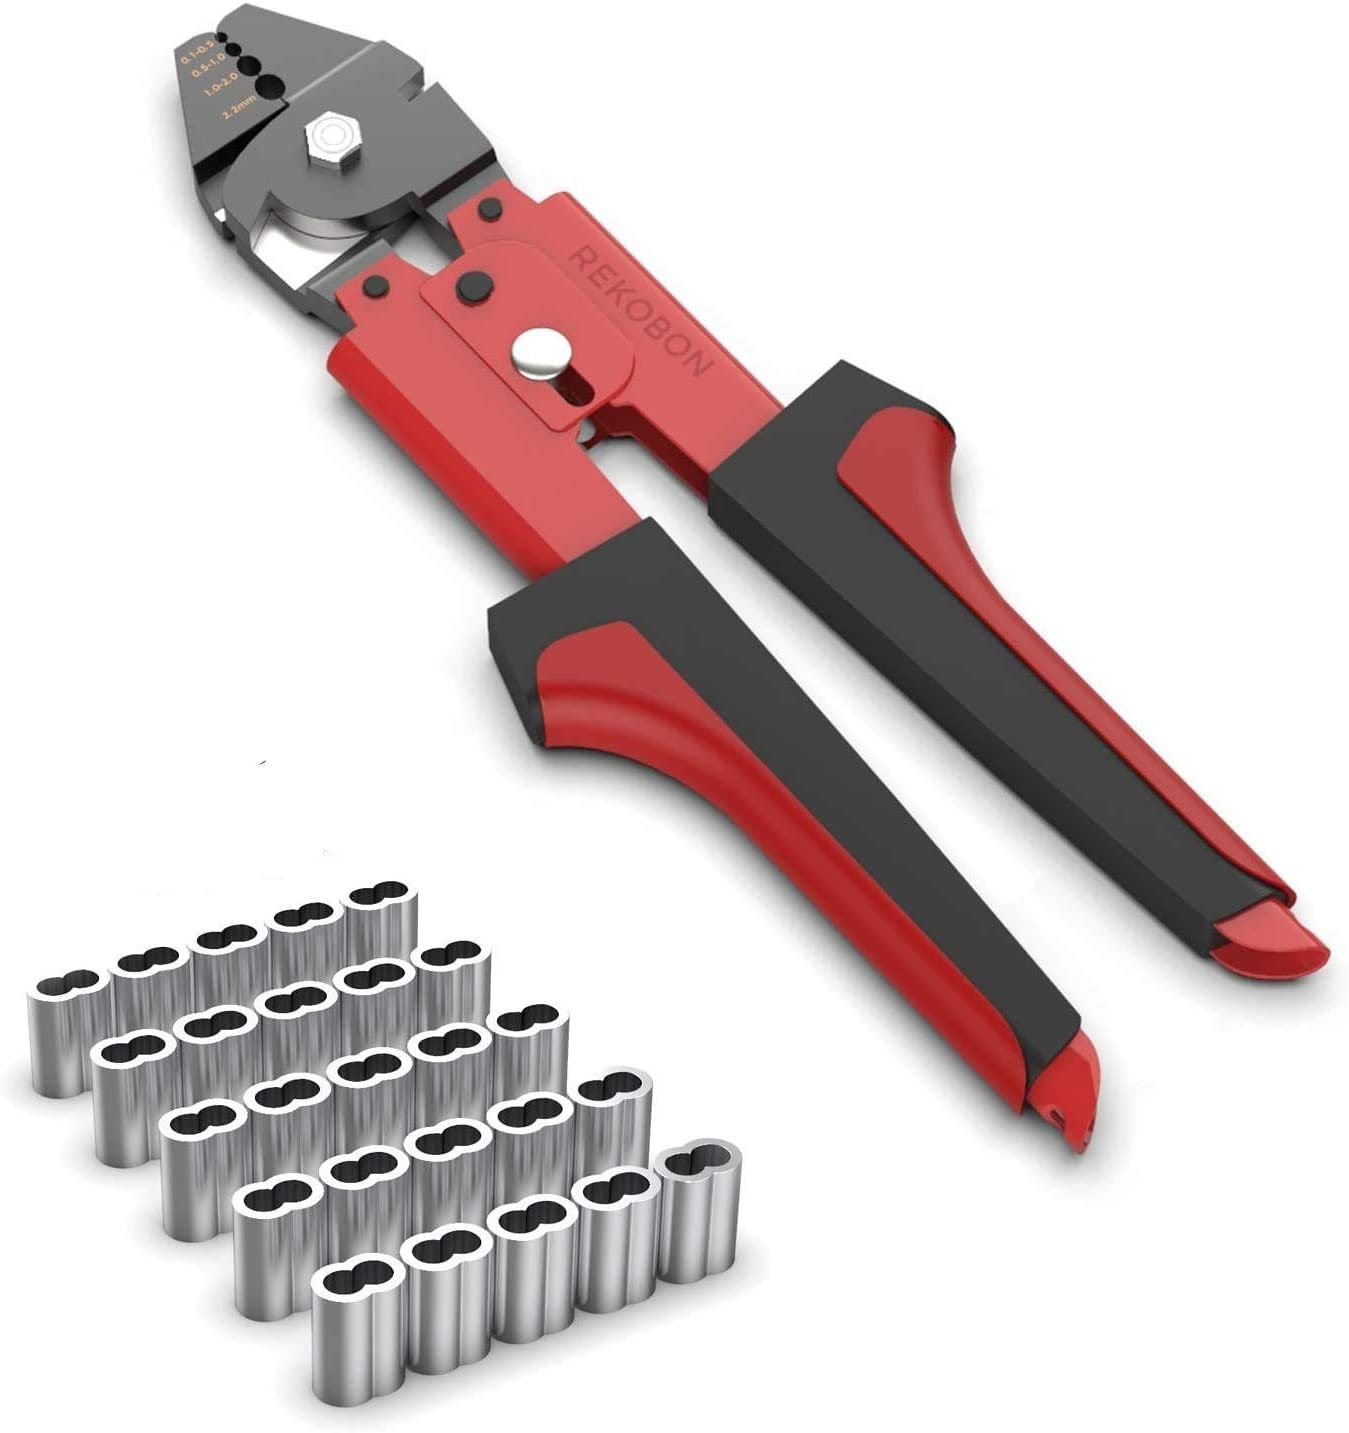 REKOBON 1/16 inch Wire Rope Crimping Cutting Tool with 100 PCS Aluminum Double Barrel Ferrule Crimping Loop Sleeves Kit